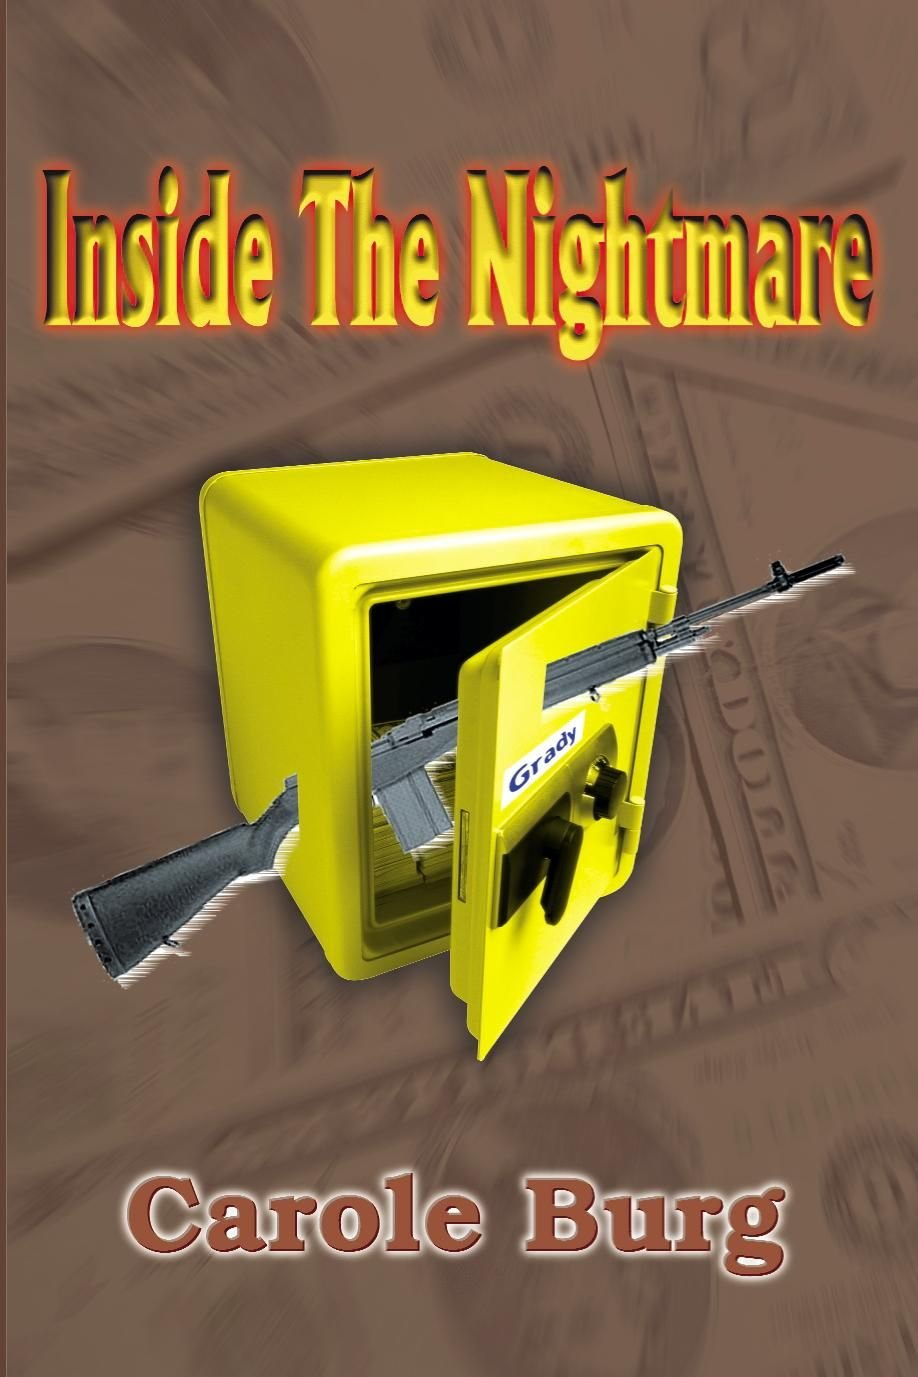 Inside the Nightmare - Carole Burg